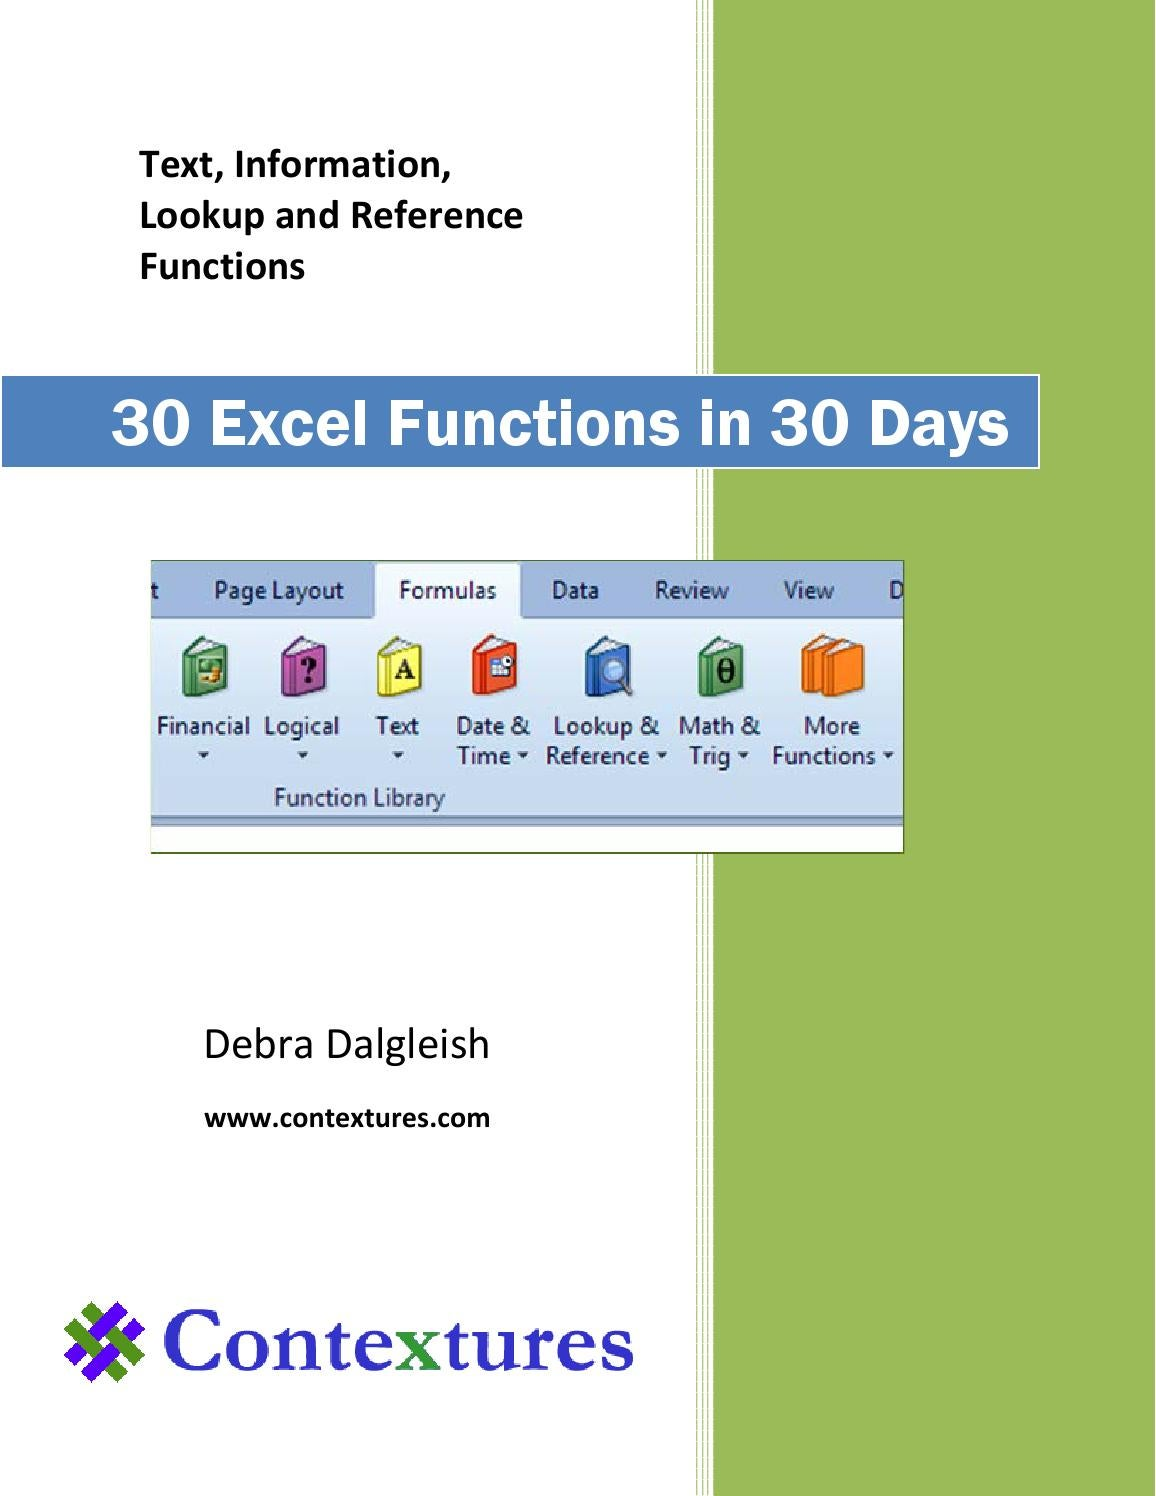 20 Excel Functions in 20 days by Mbuyisa McusiMBA Candidate   issuu